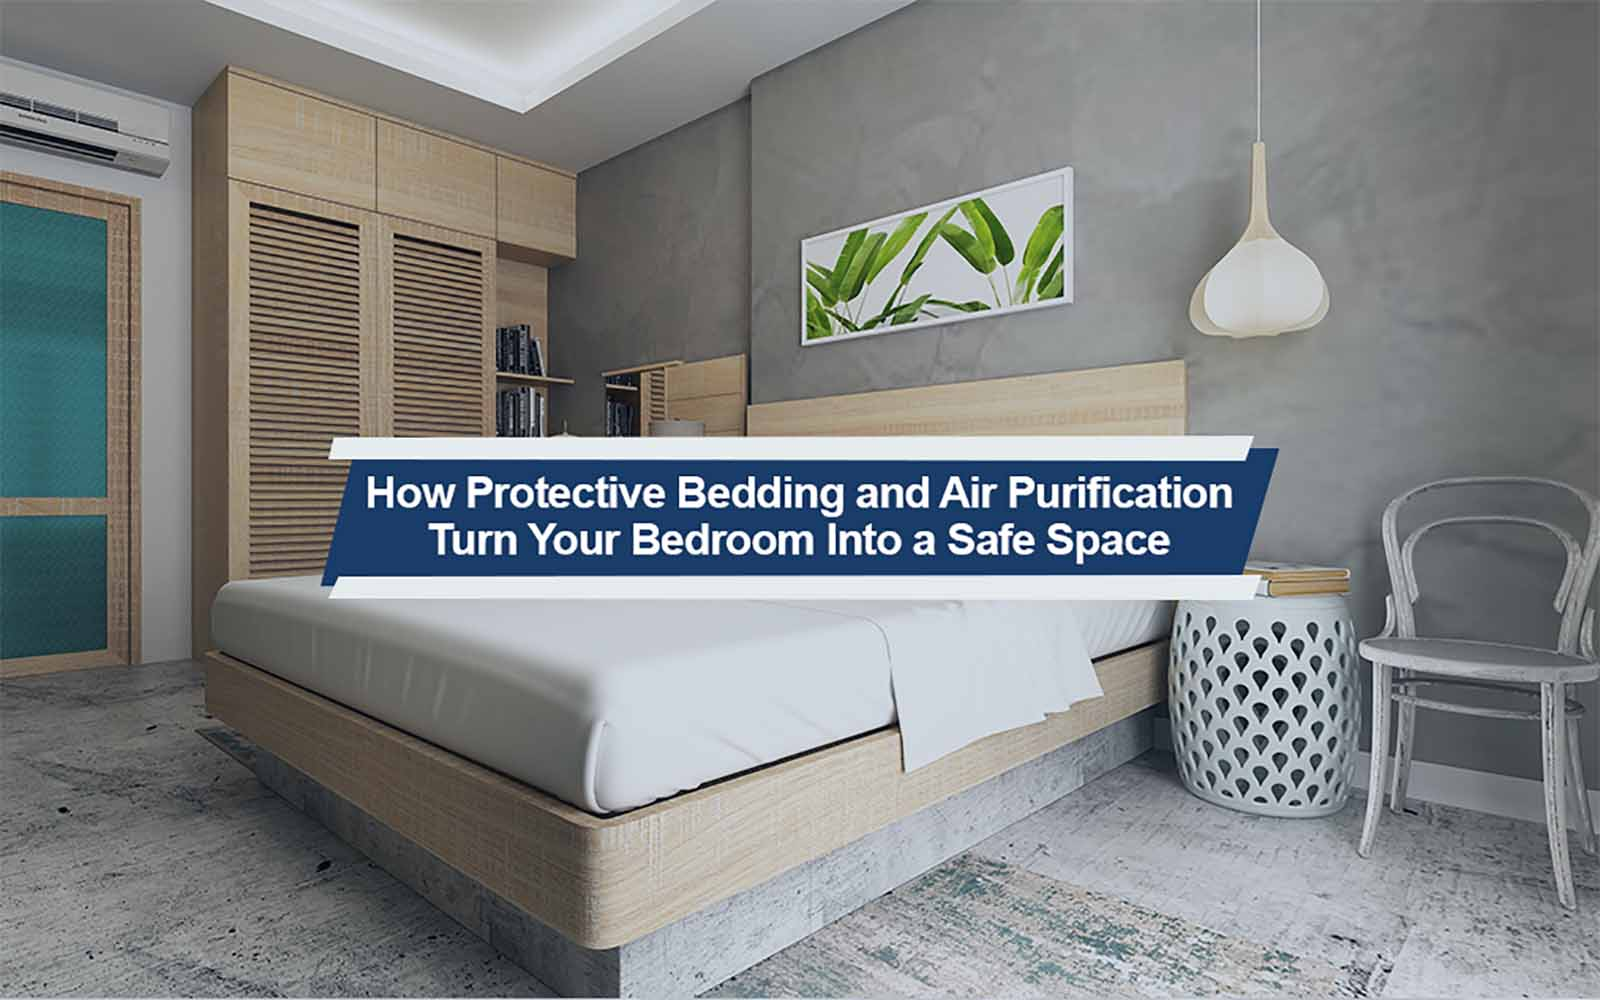 How Protective Bedding and Air Purification Turns Your Bedroom Into a Safe Space